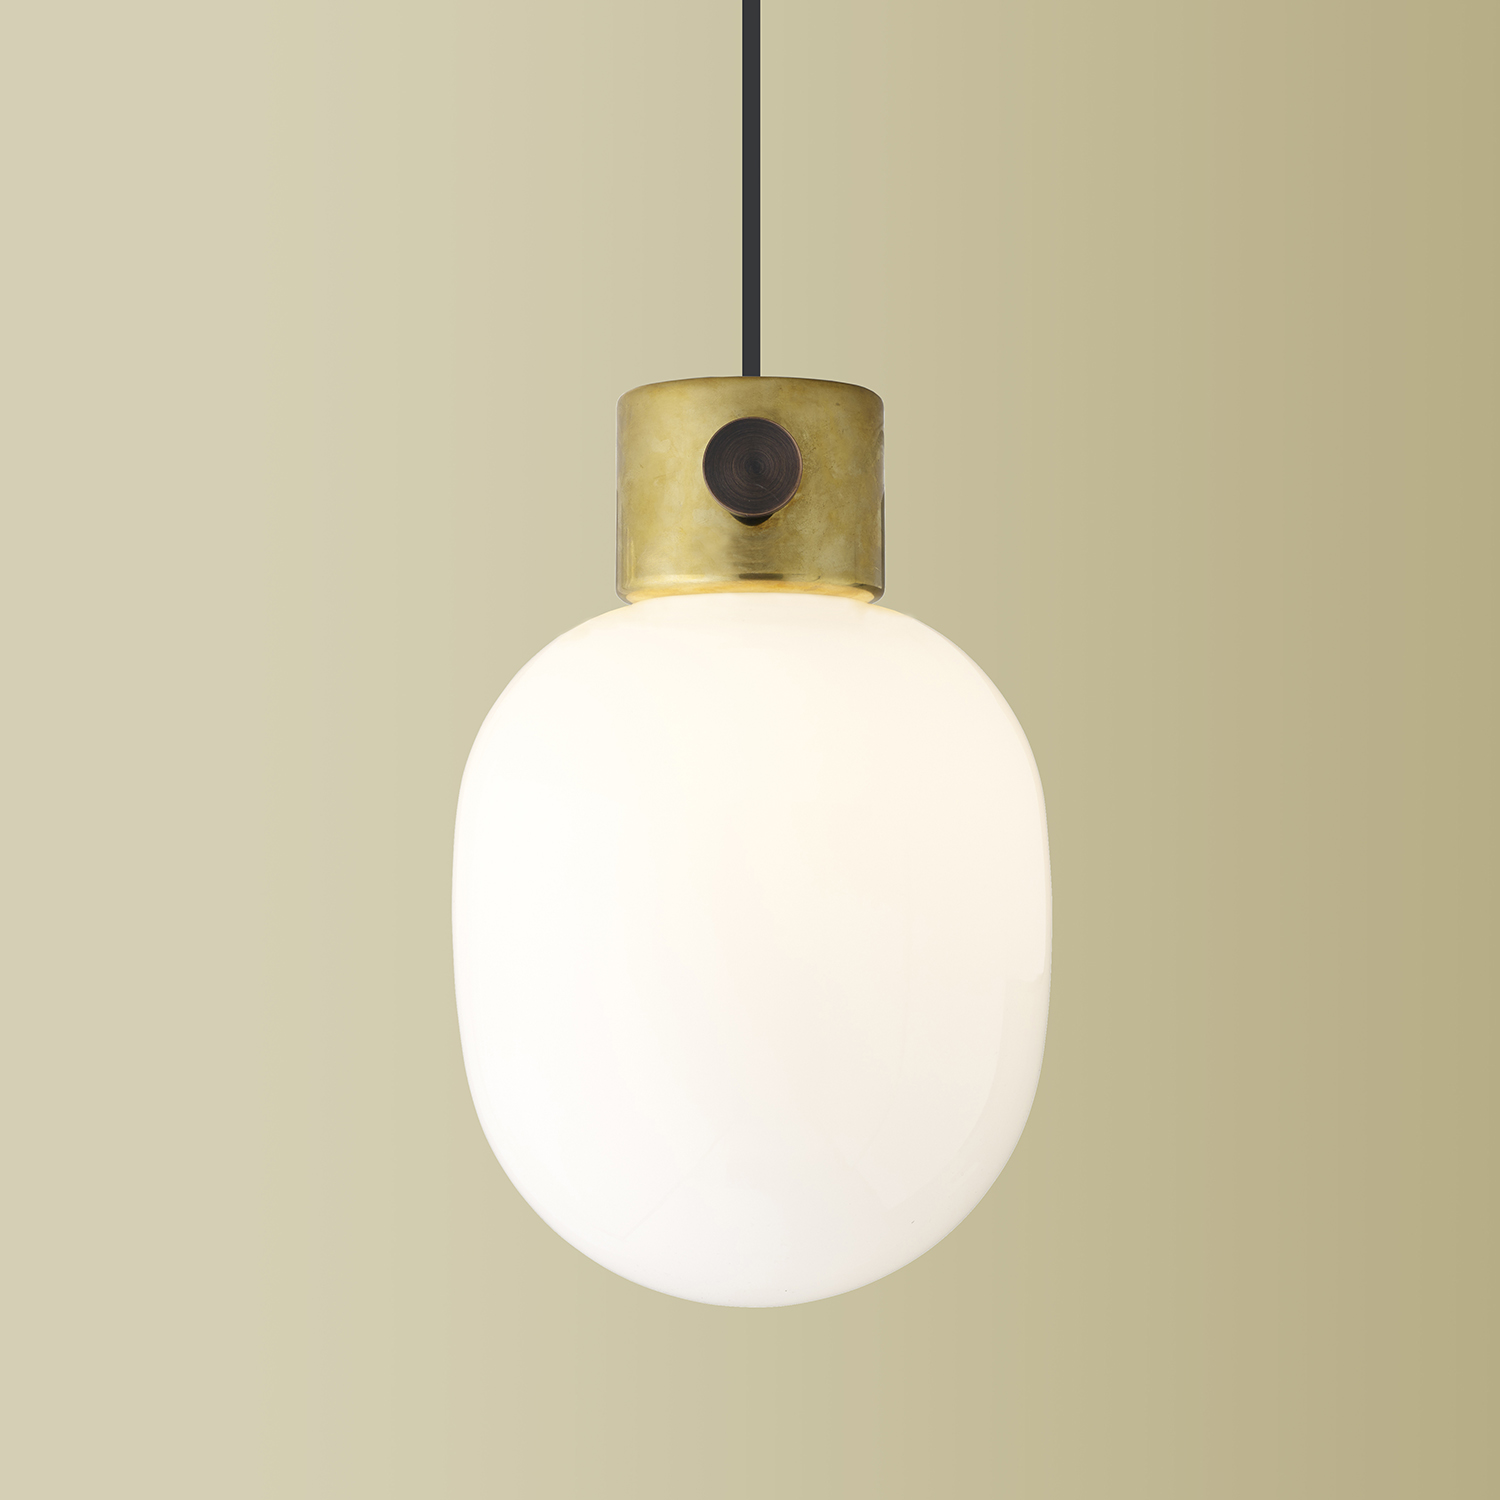 JWDA-pendant-fix_brass1_bg-yellow_1500x1500